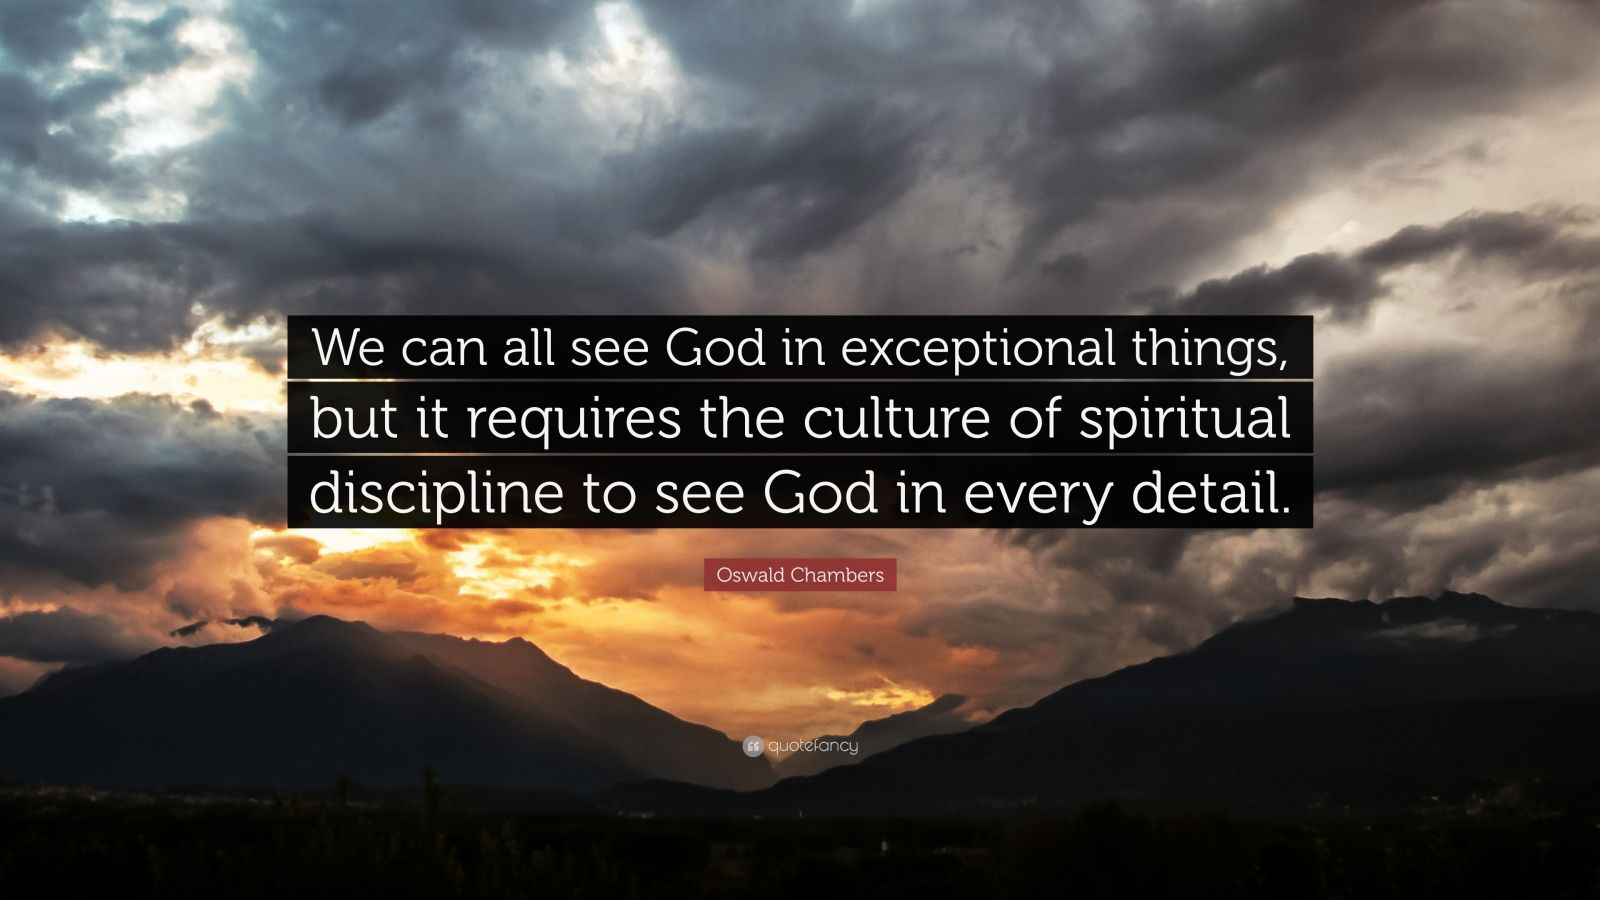 """Oswald Chambers Quote: """"We can all see God in exceptional things, but it requires the culture of spiritual discipline to see God in every detail."""""""